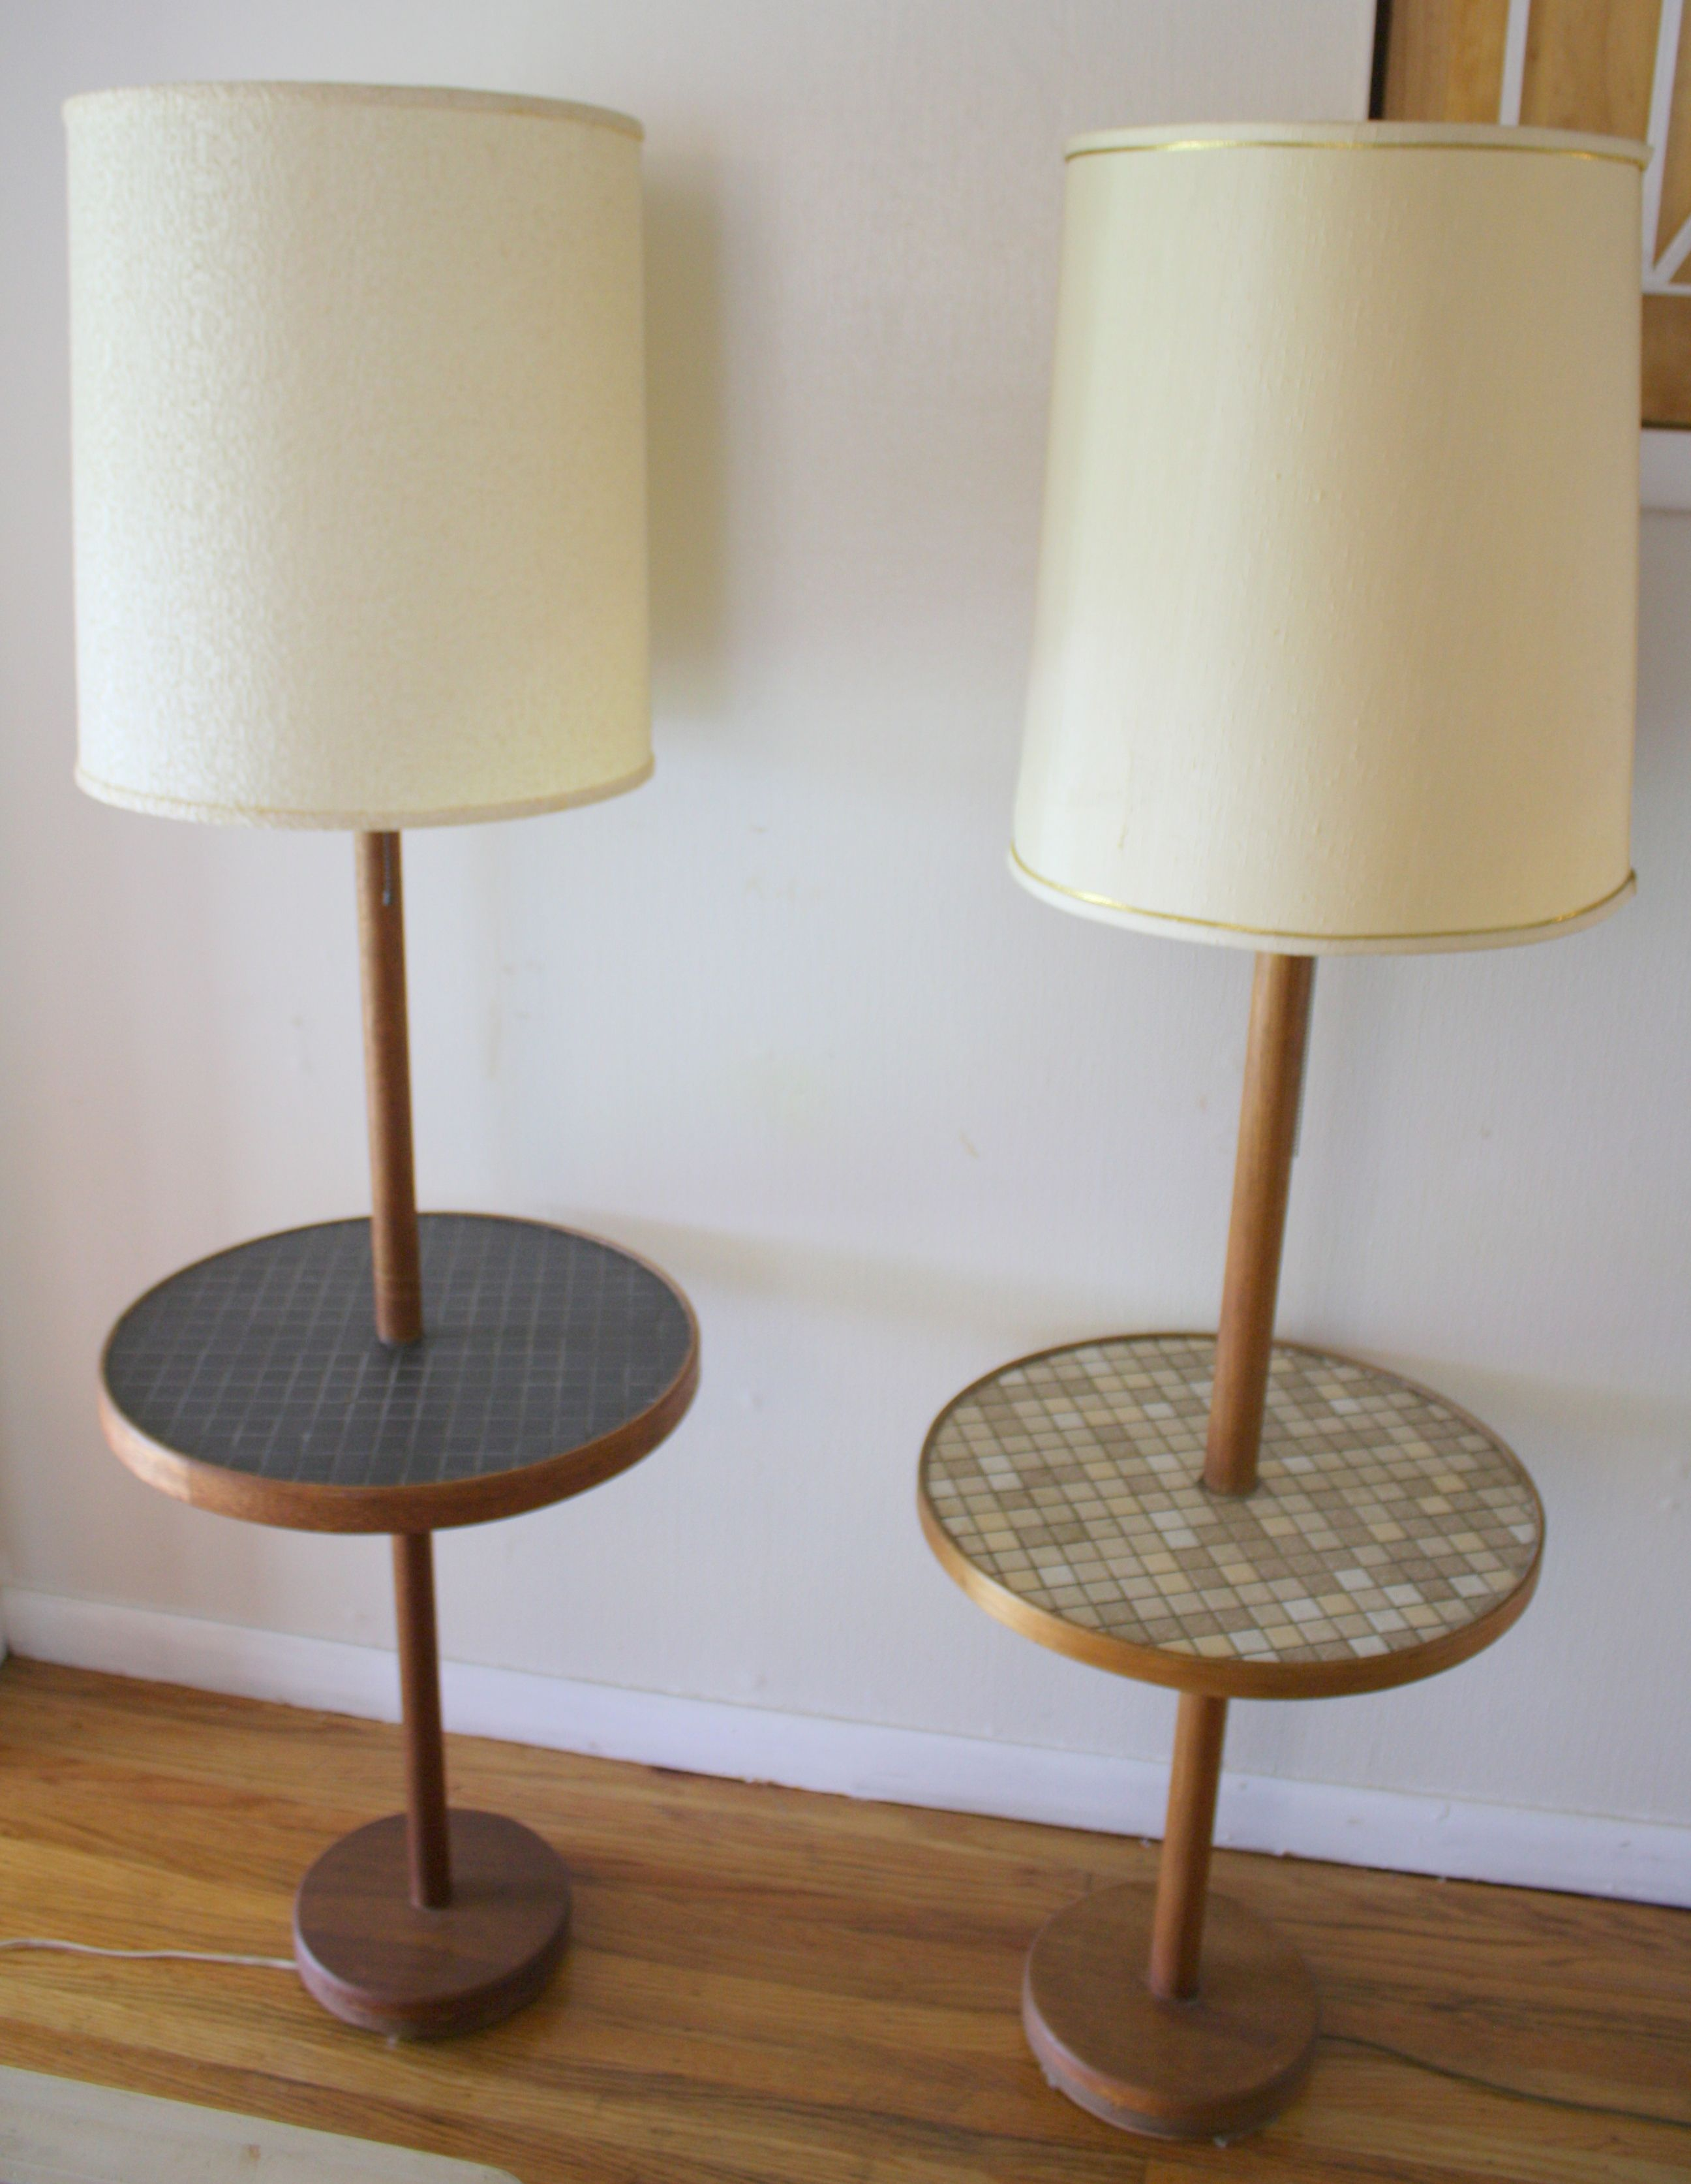 Mid century modern floor lamps with tile top tables Mid century modern flooring